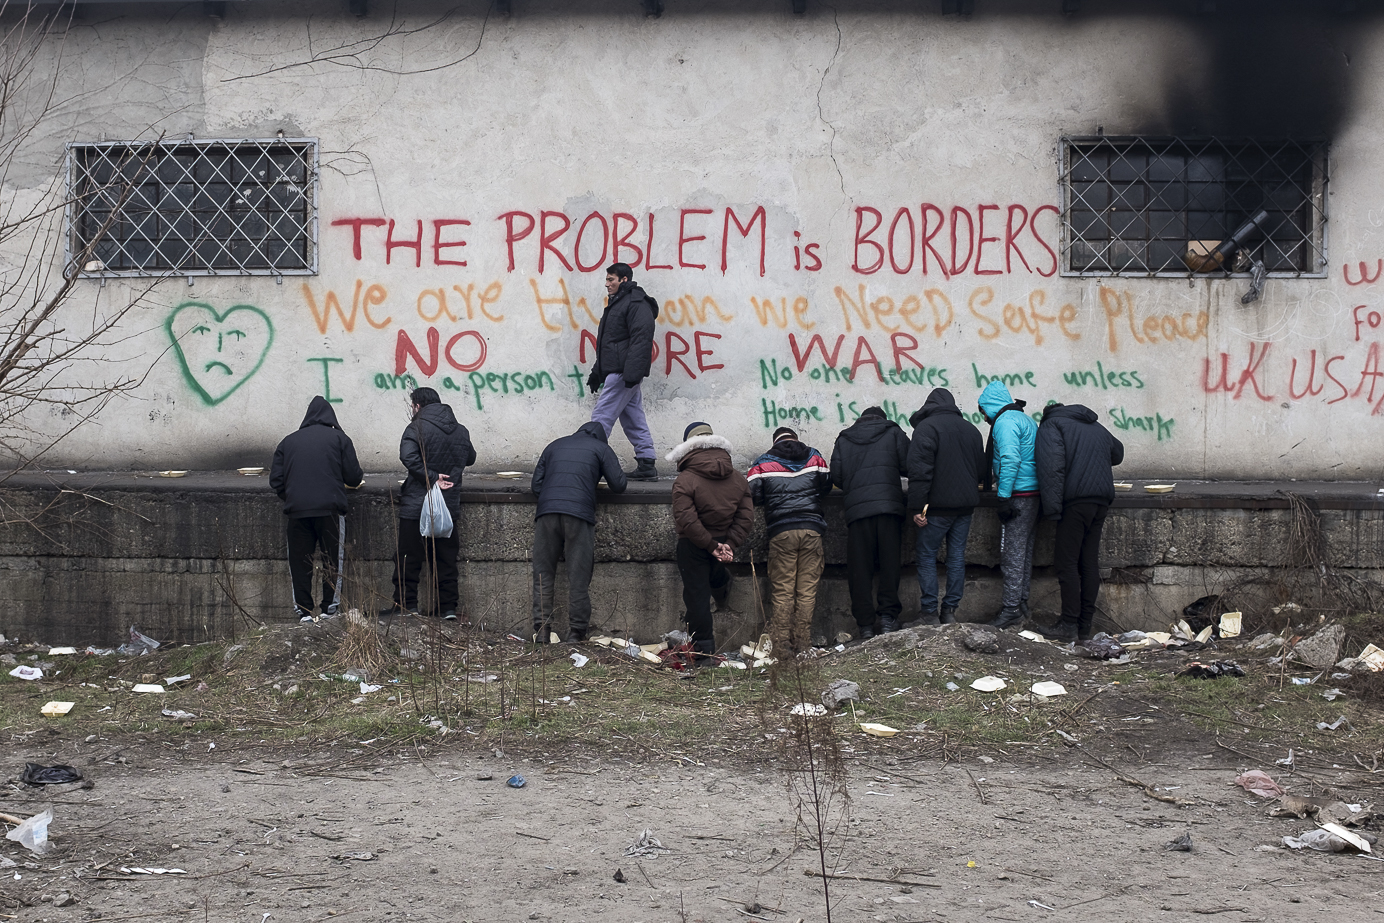 Migrants eat their lunch donated by volunteers outside an abandoned warehouse where they took shelter in Belgrade, Serbia. February 14, 2107.